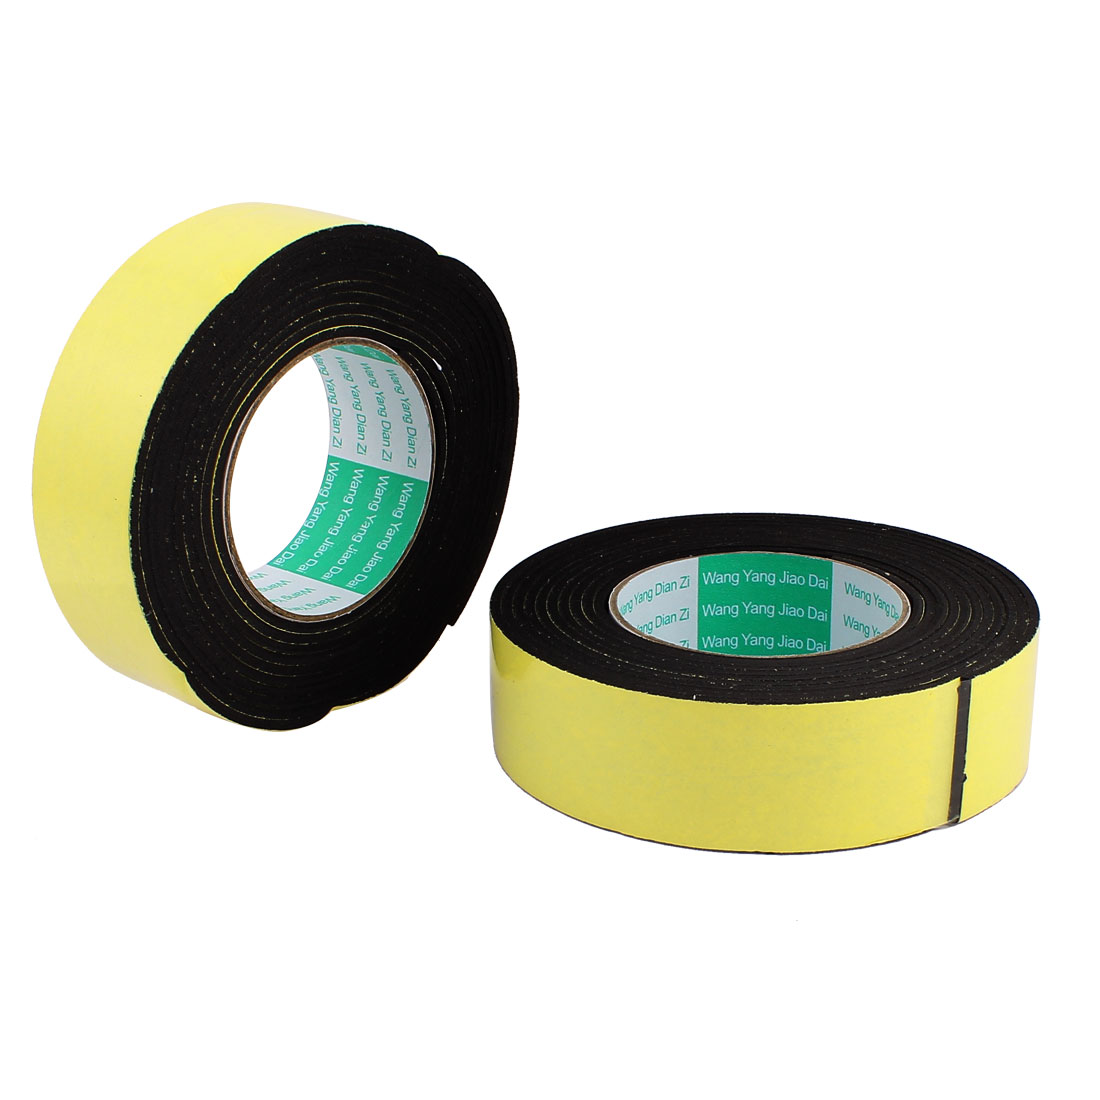 "2 Pcs 1.57"" Width 1.57ft Length 1/10"" Thick Single Sided Sealing Shockproof Sponge Tape"